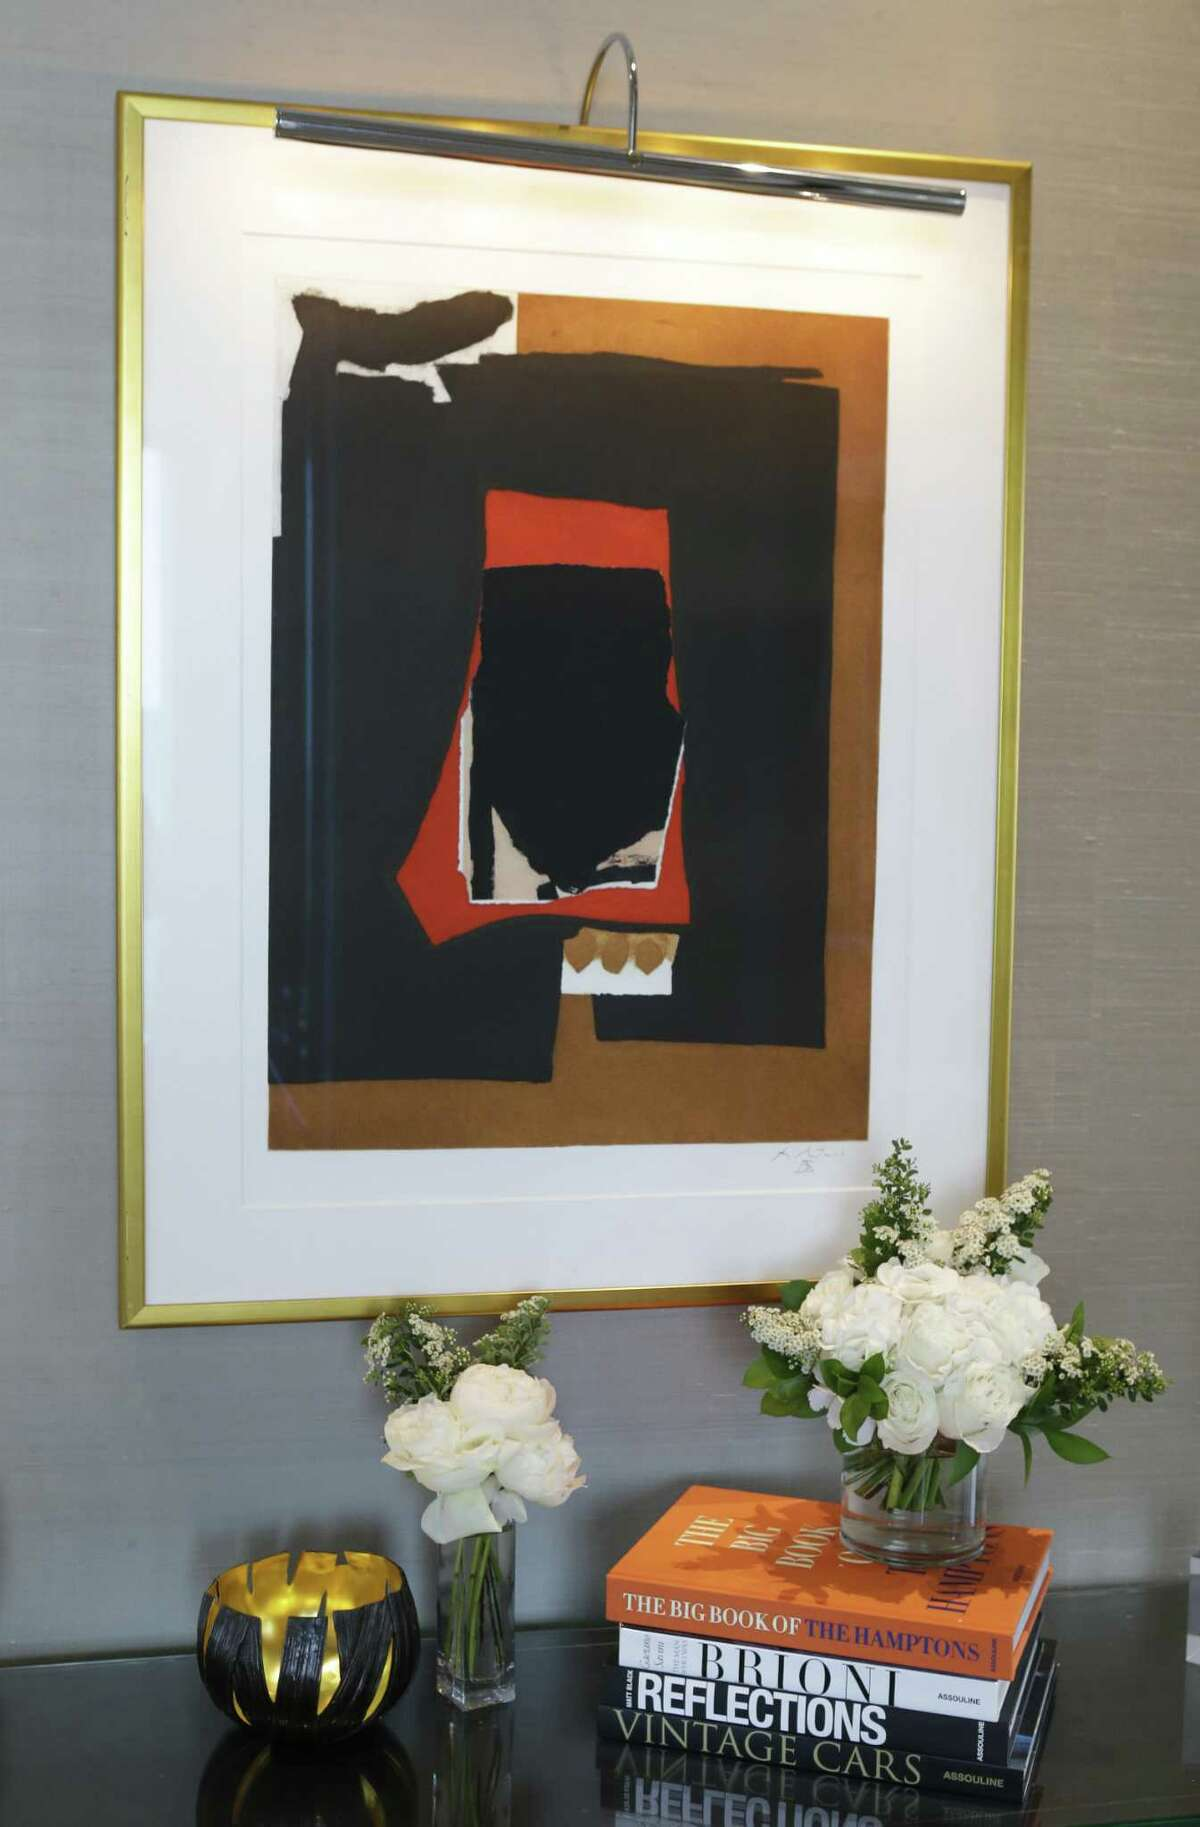 Art by Robert Motherwell is shown in the Presidential Suite at the Post Oak Hotel, 1600 West Loop South, Tuesday, June 5, 2018, in Houston. ( Melissa Phillip / Houston Chronicle )